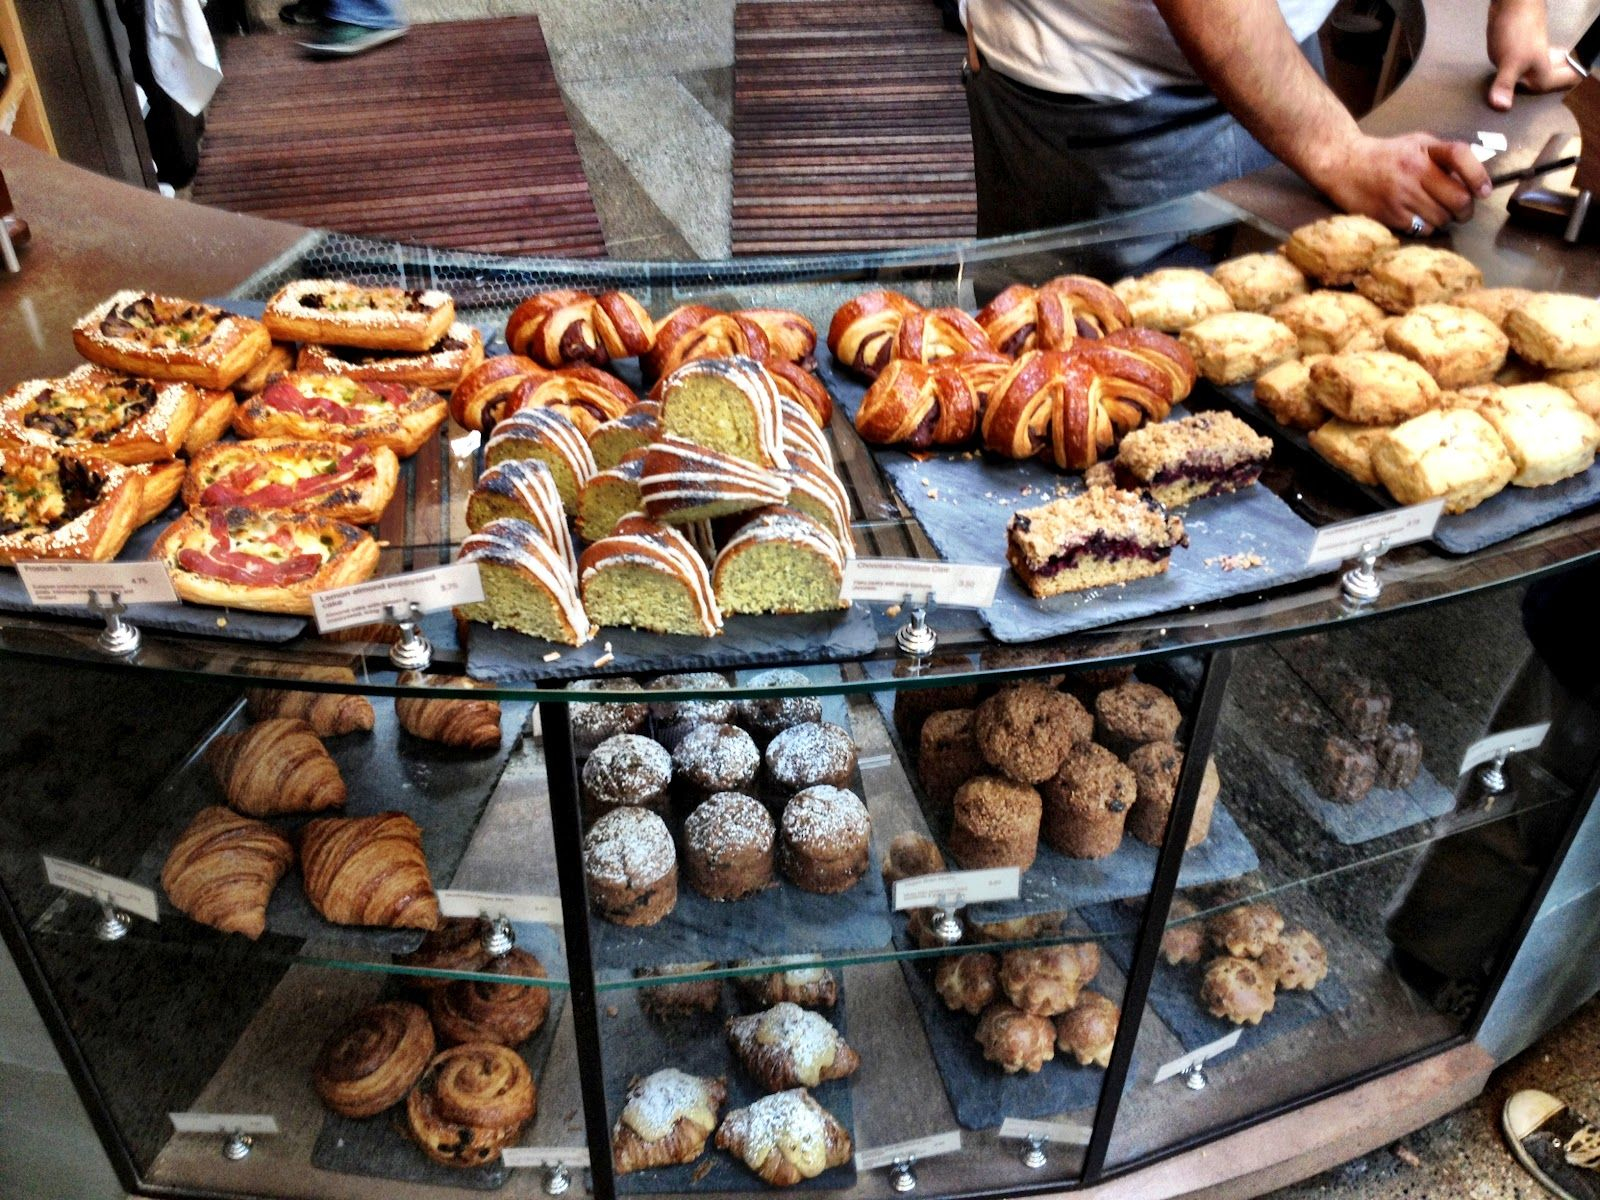 SIGHTGLASS COFFEE / San Francisco just look at the pastry display ...